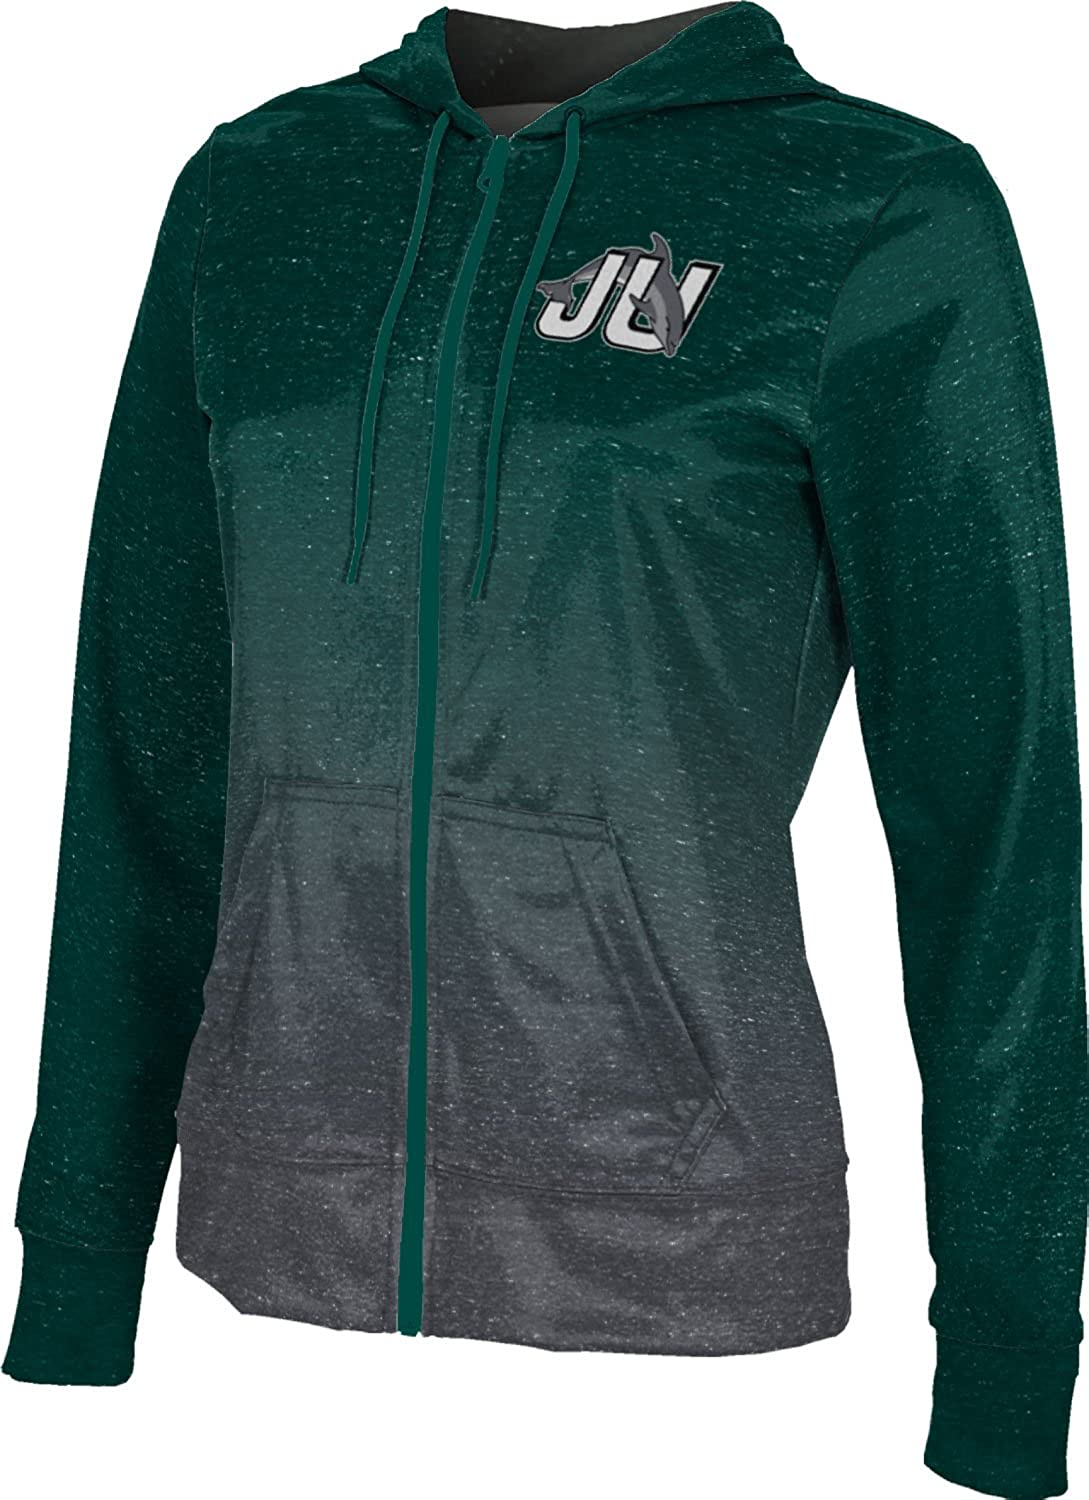 ProSphere Jacksonville University Girls' Full Zip Hoodie - Ombre